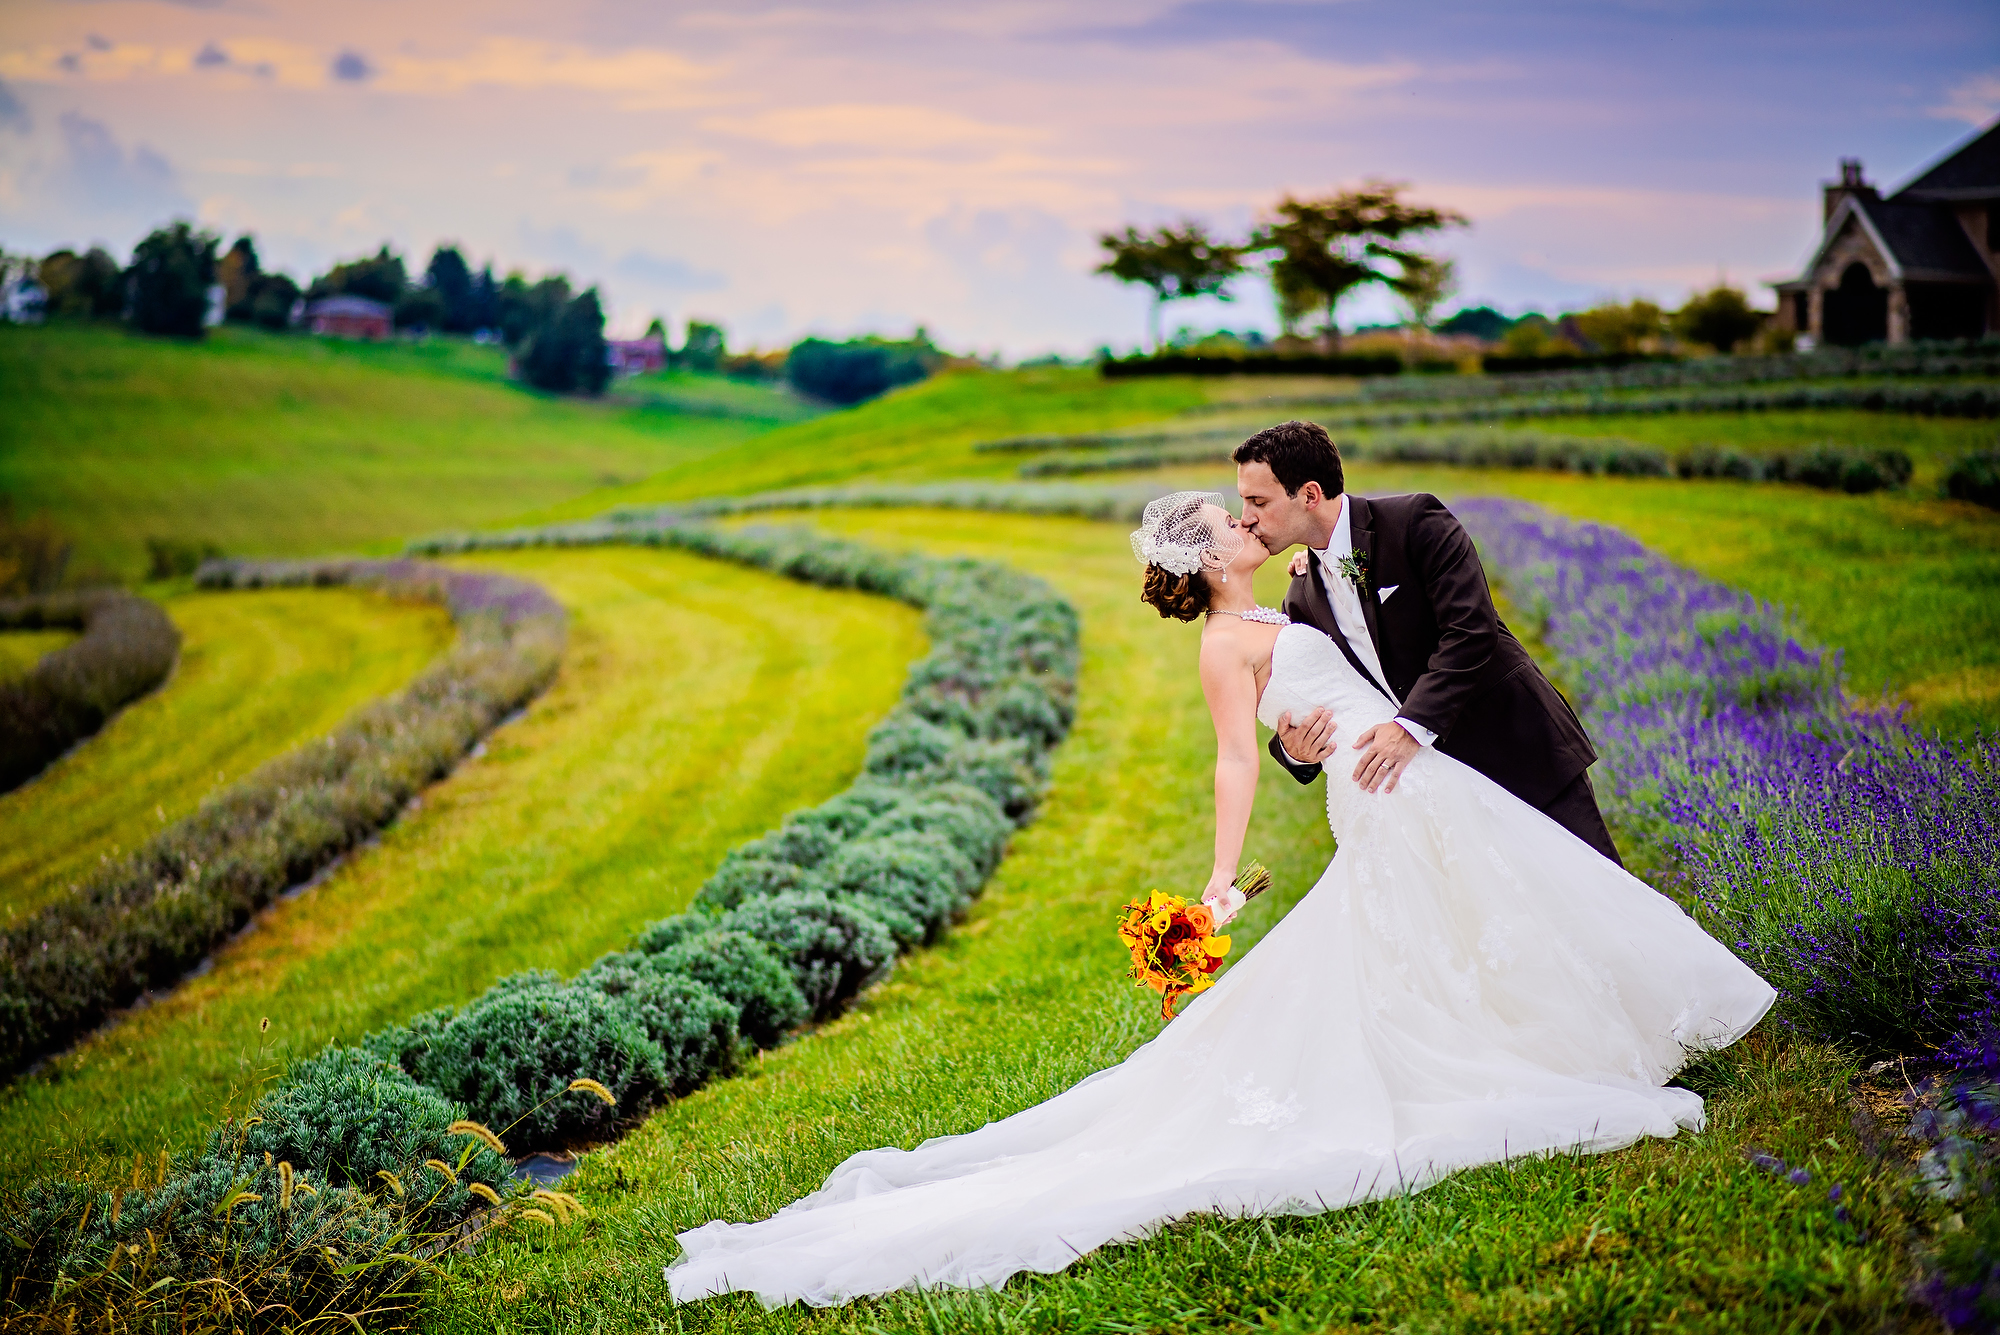 Weddings - Moments to remember for a lifetime.